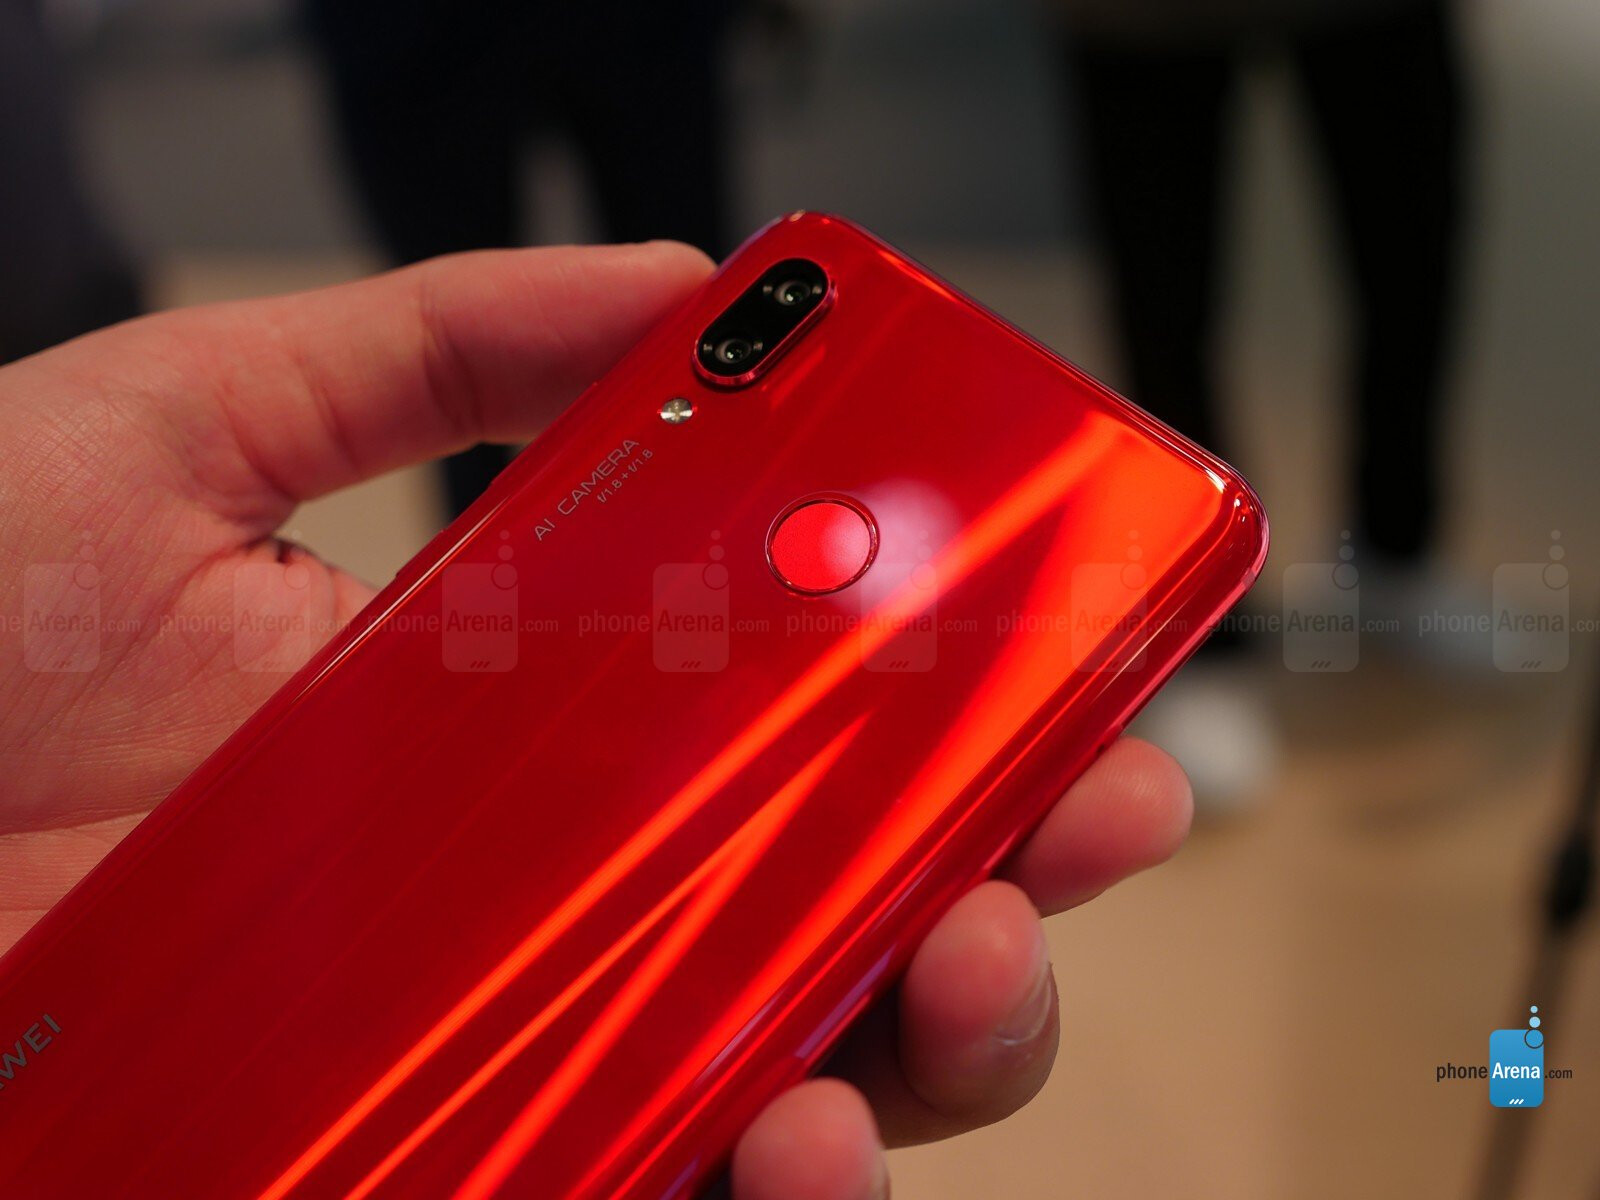 Huawei Nova 3 hands-on: Vibrant colors and great value